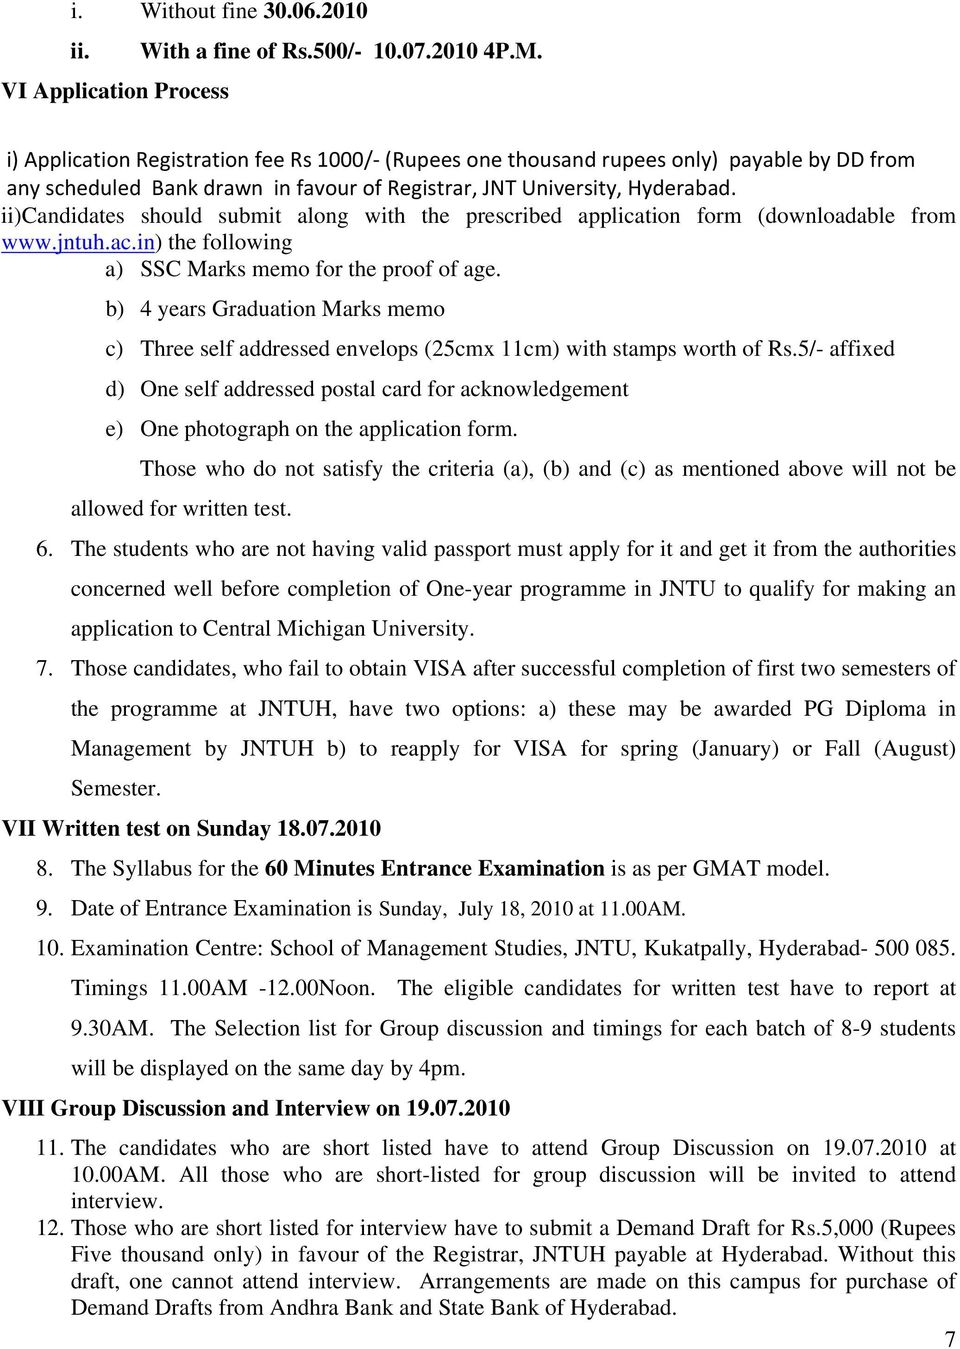 ii)candidates should submit along with the prescribed application form (downloadable from www.jntuh.ac.in) the following a) SSC Marks memo for the proof of age.